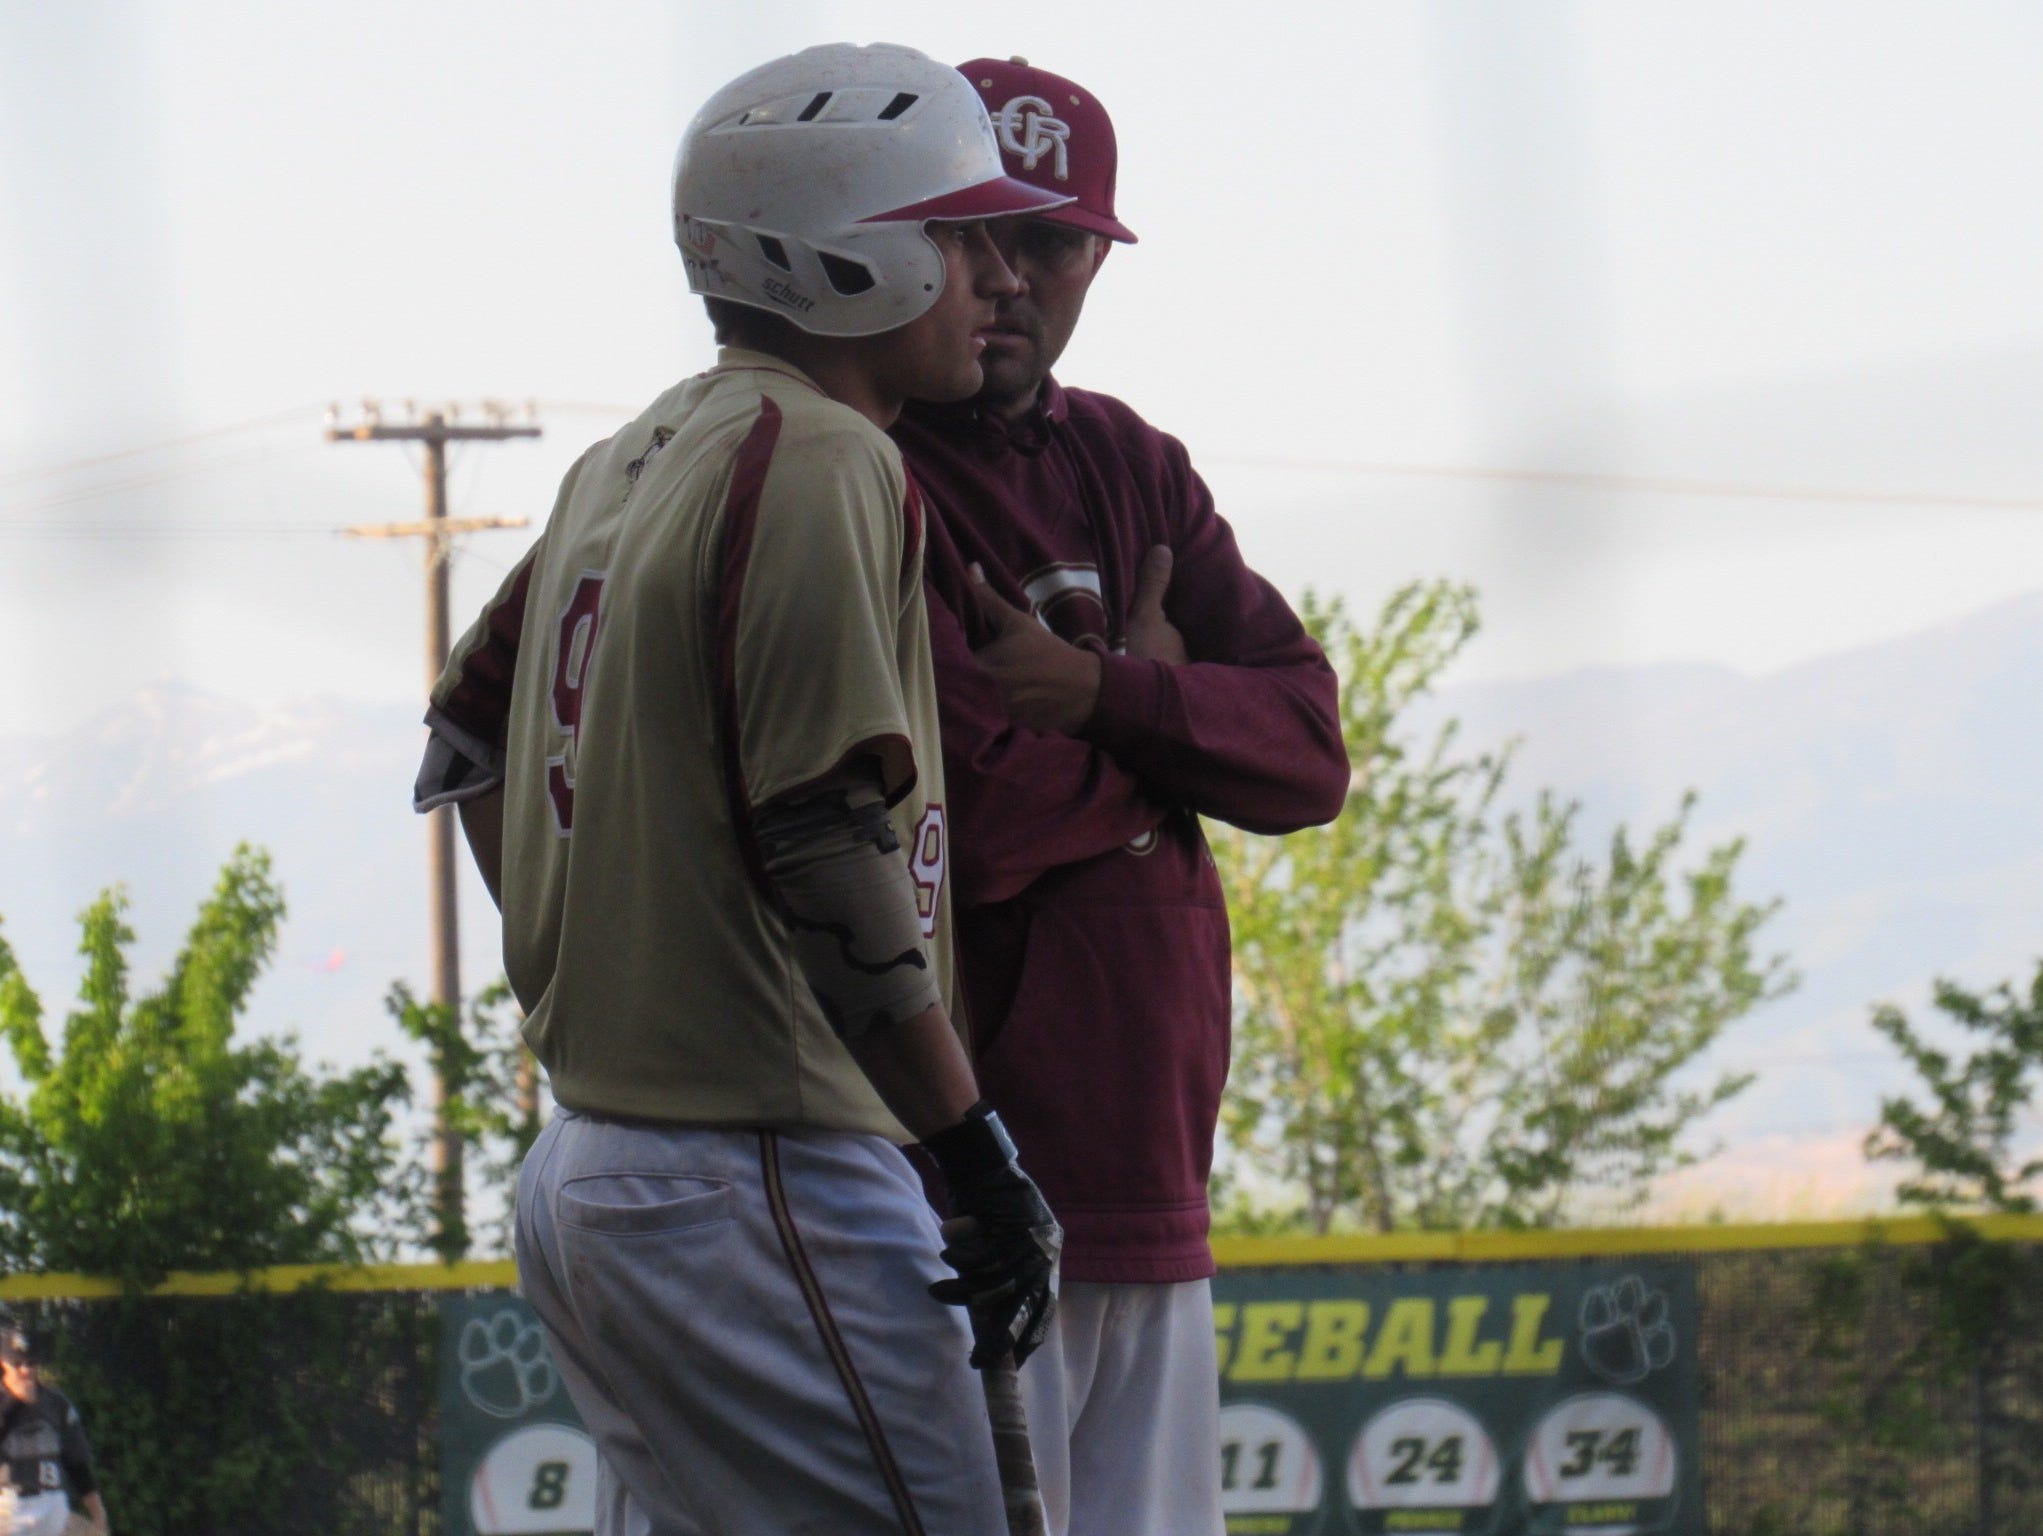 Rykker Tom talks with Cedar coach Eric Fieldsted during the 3A state championship